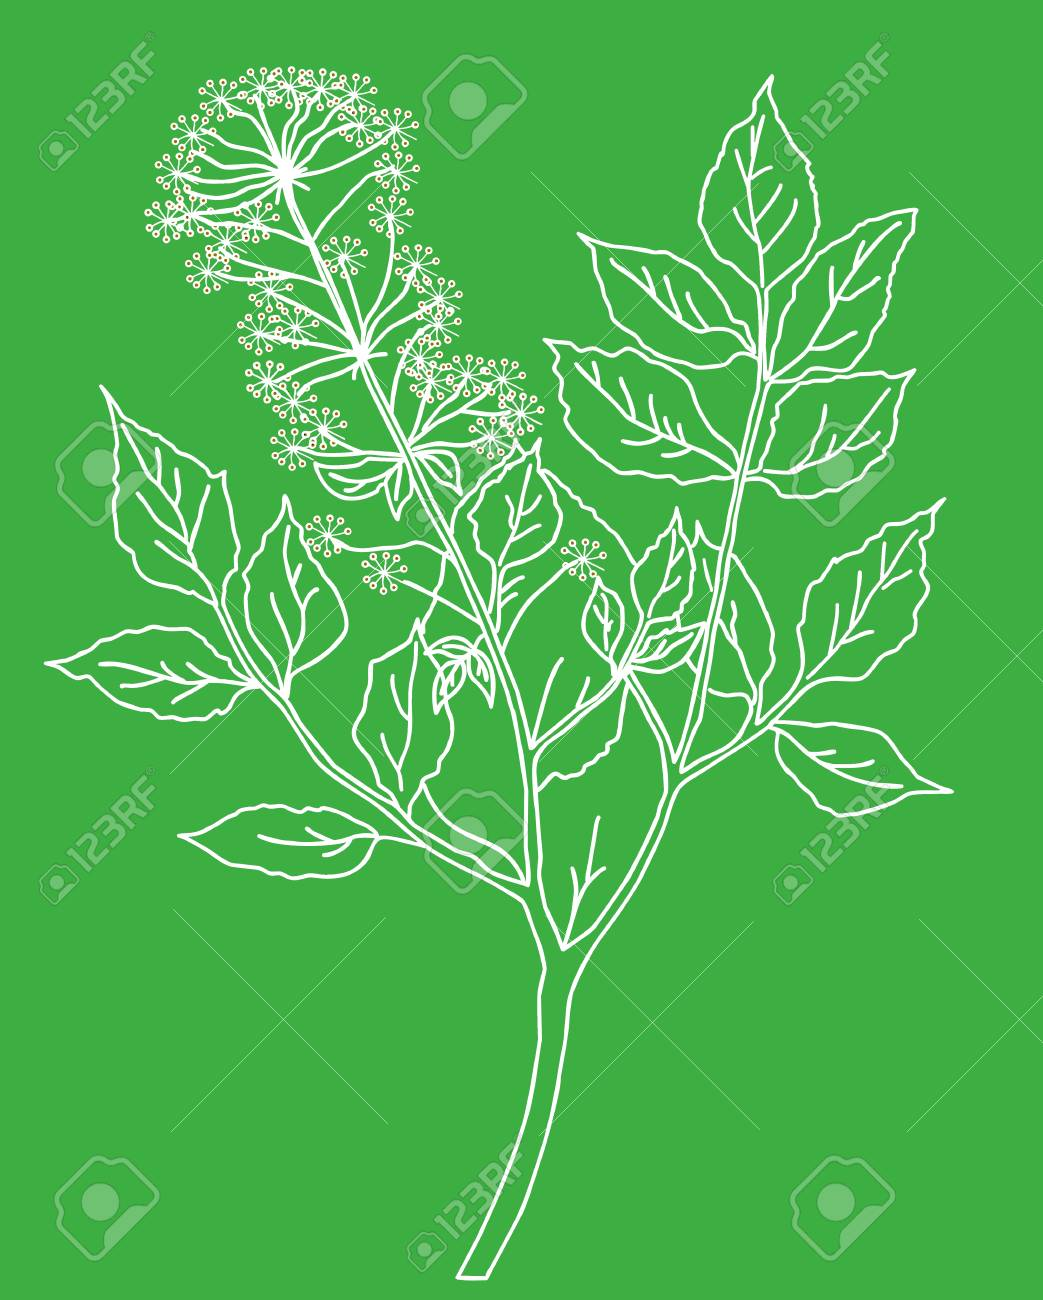 silhouette of the plant on green background Stock Vector - 7038652